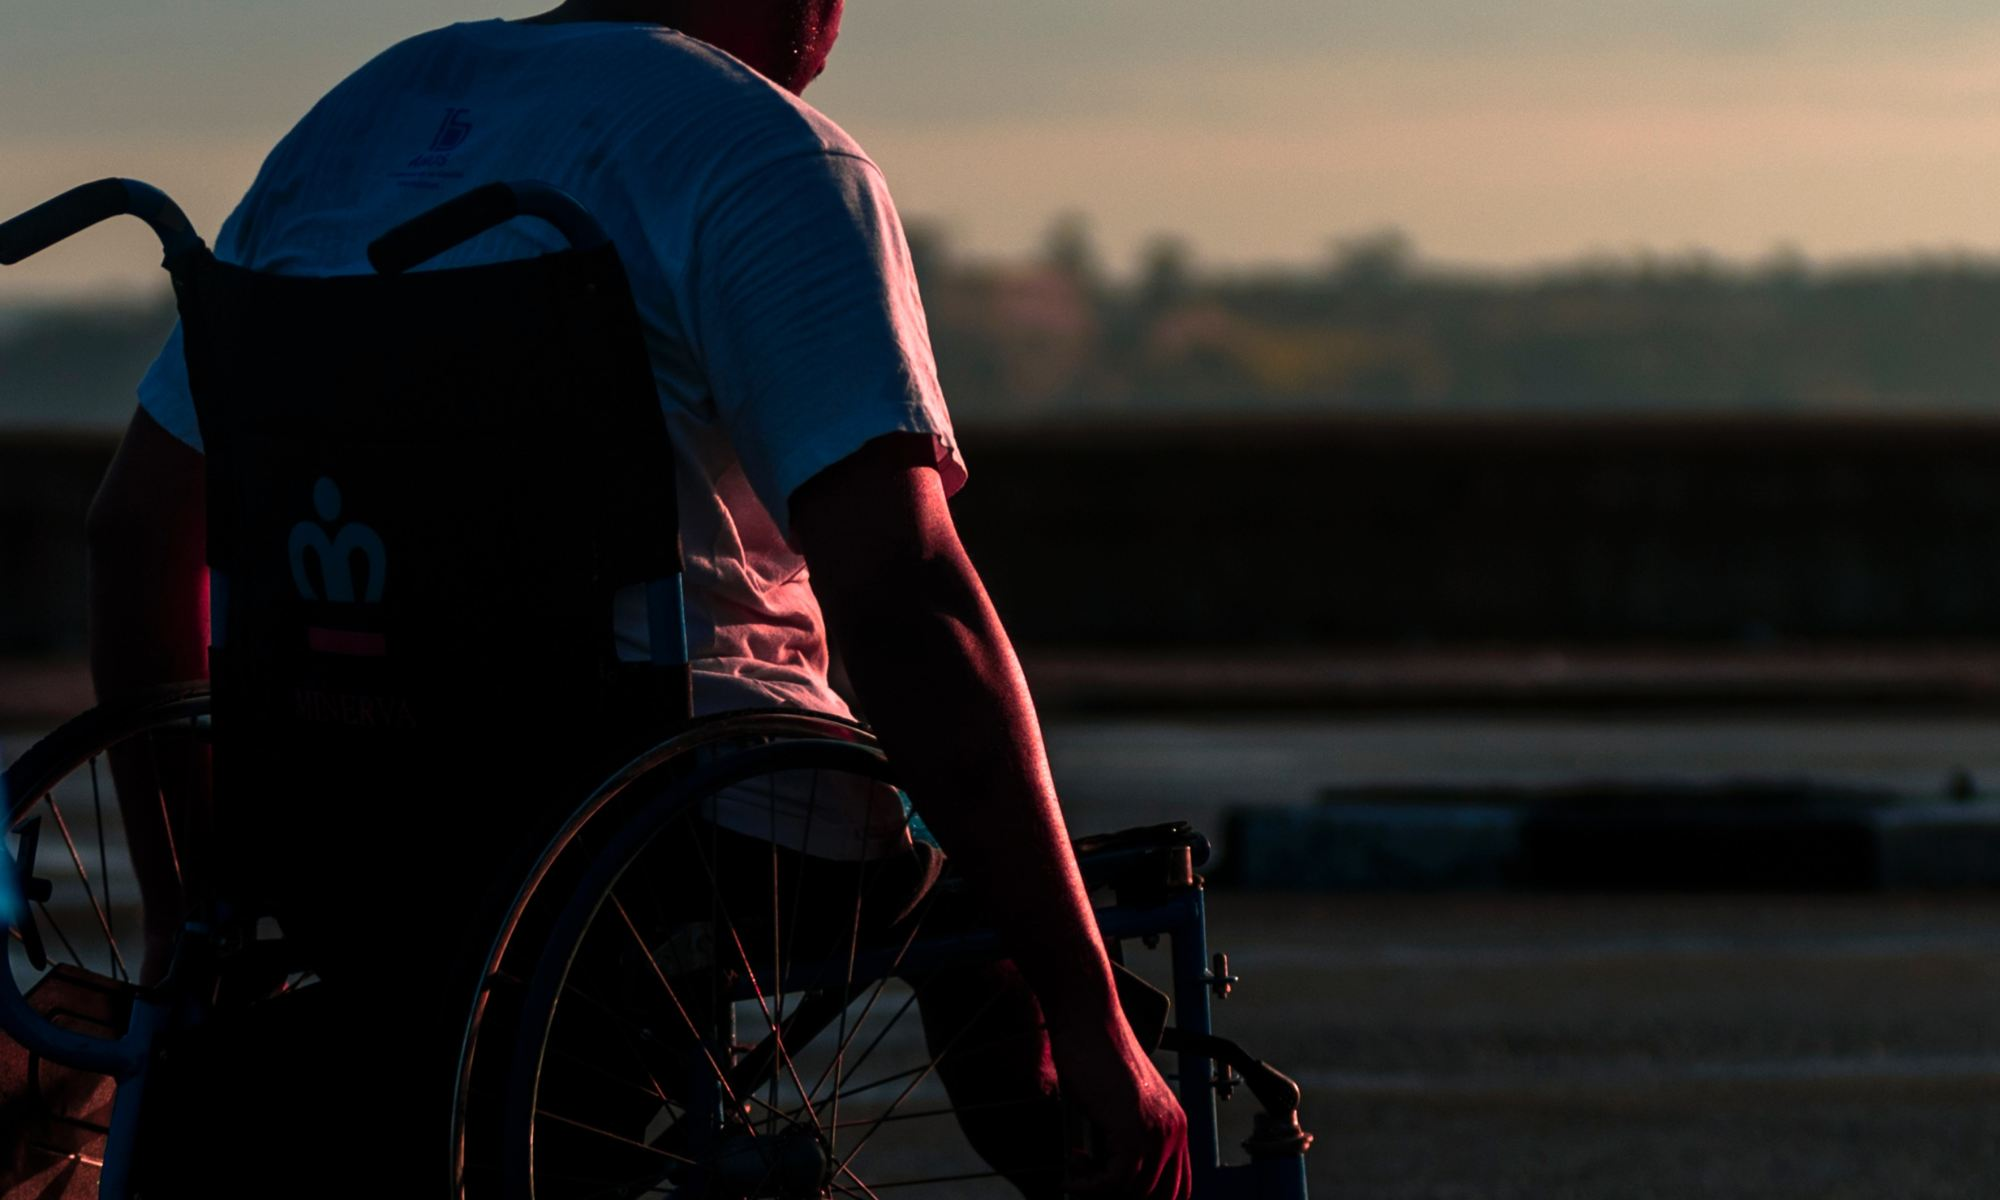 A man with multiple sclerosis in a wheelchair